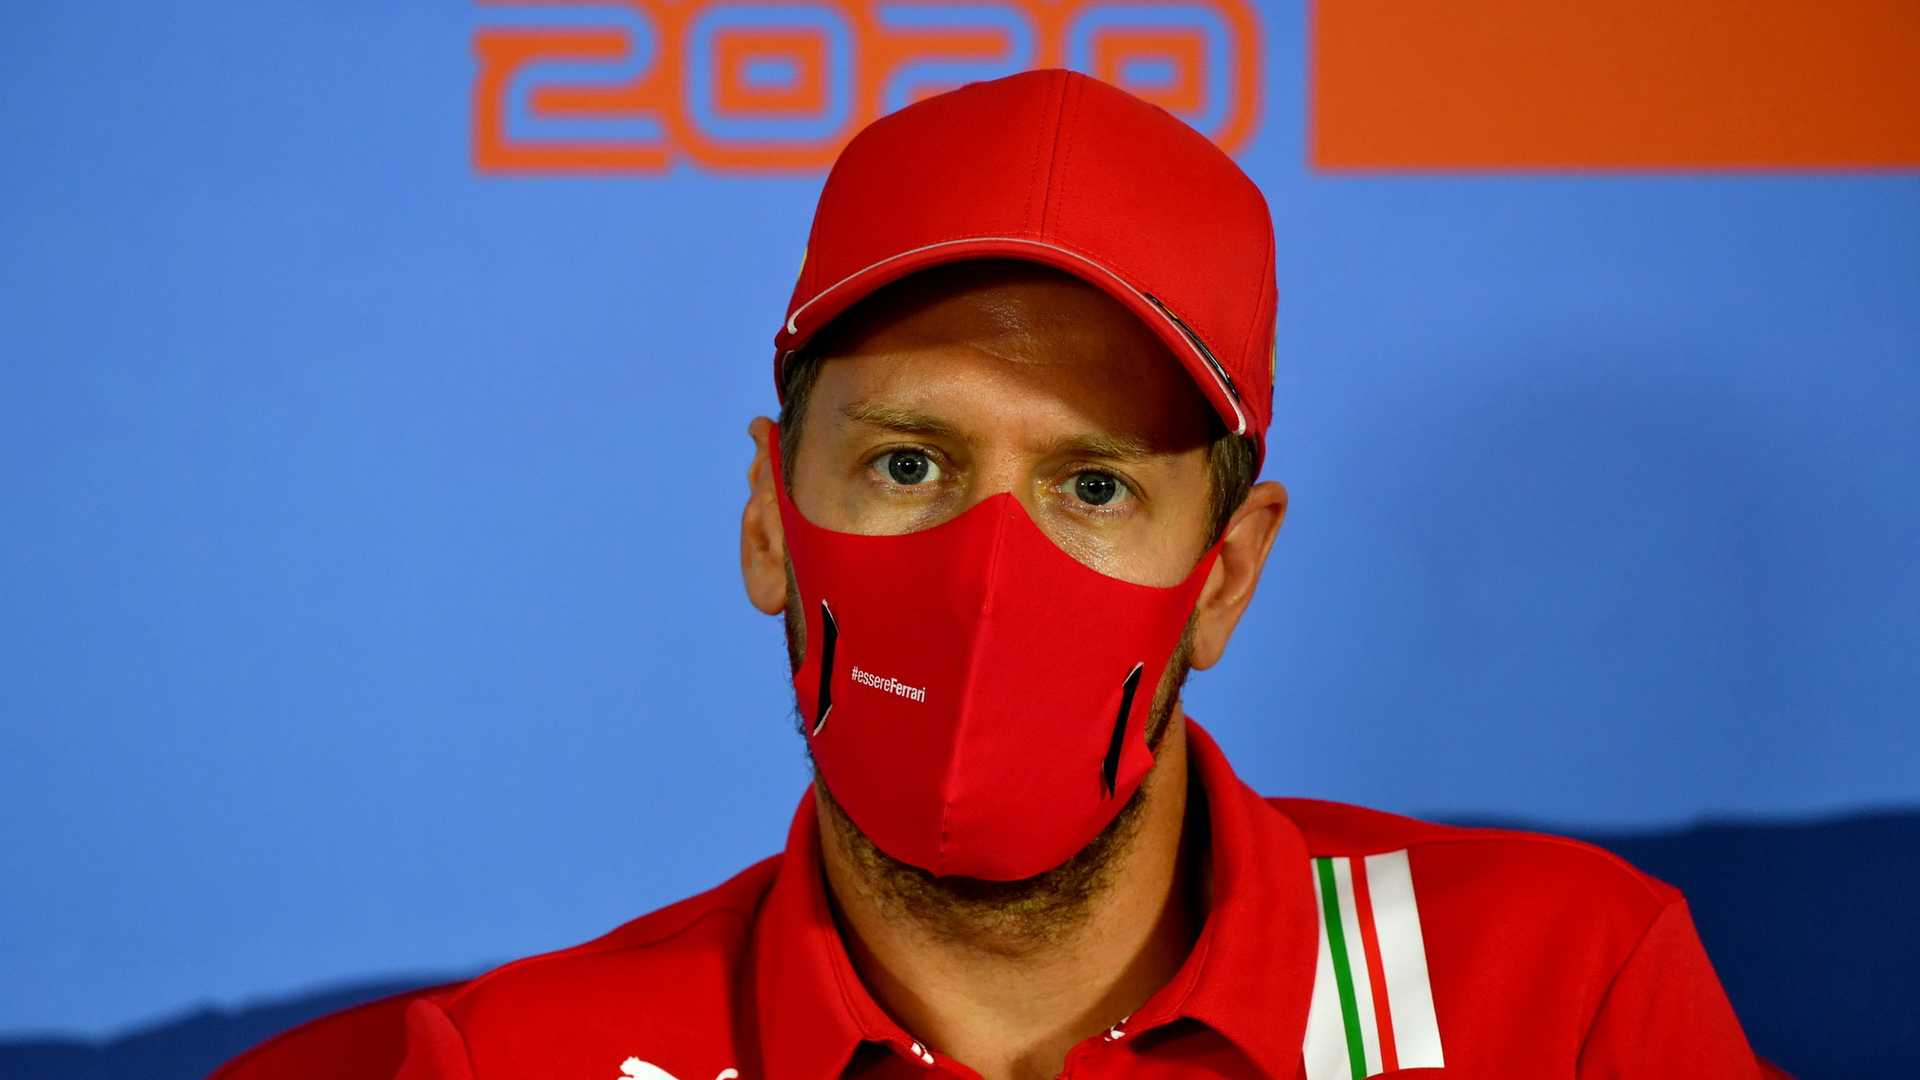 Ferrari explains why 'first choice' Vettel was axed